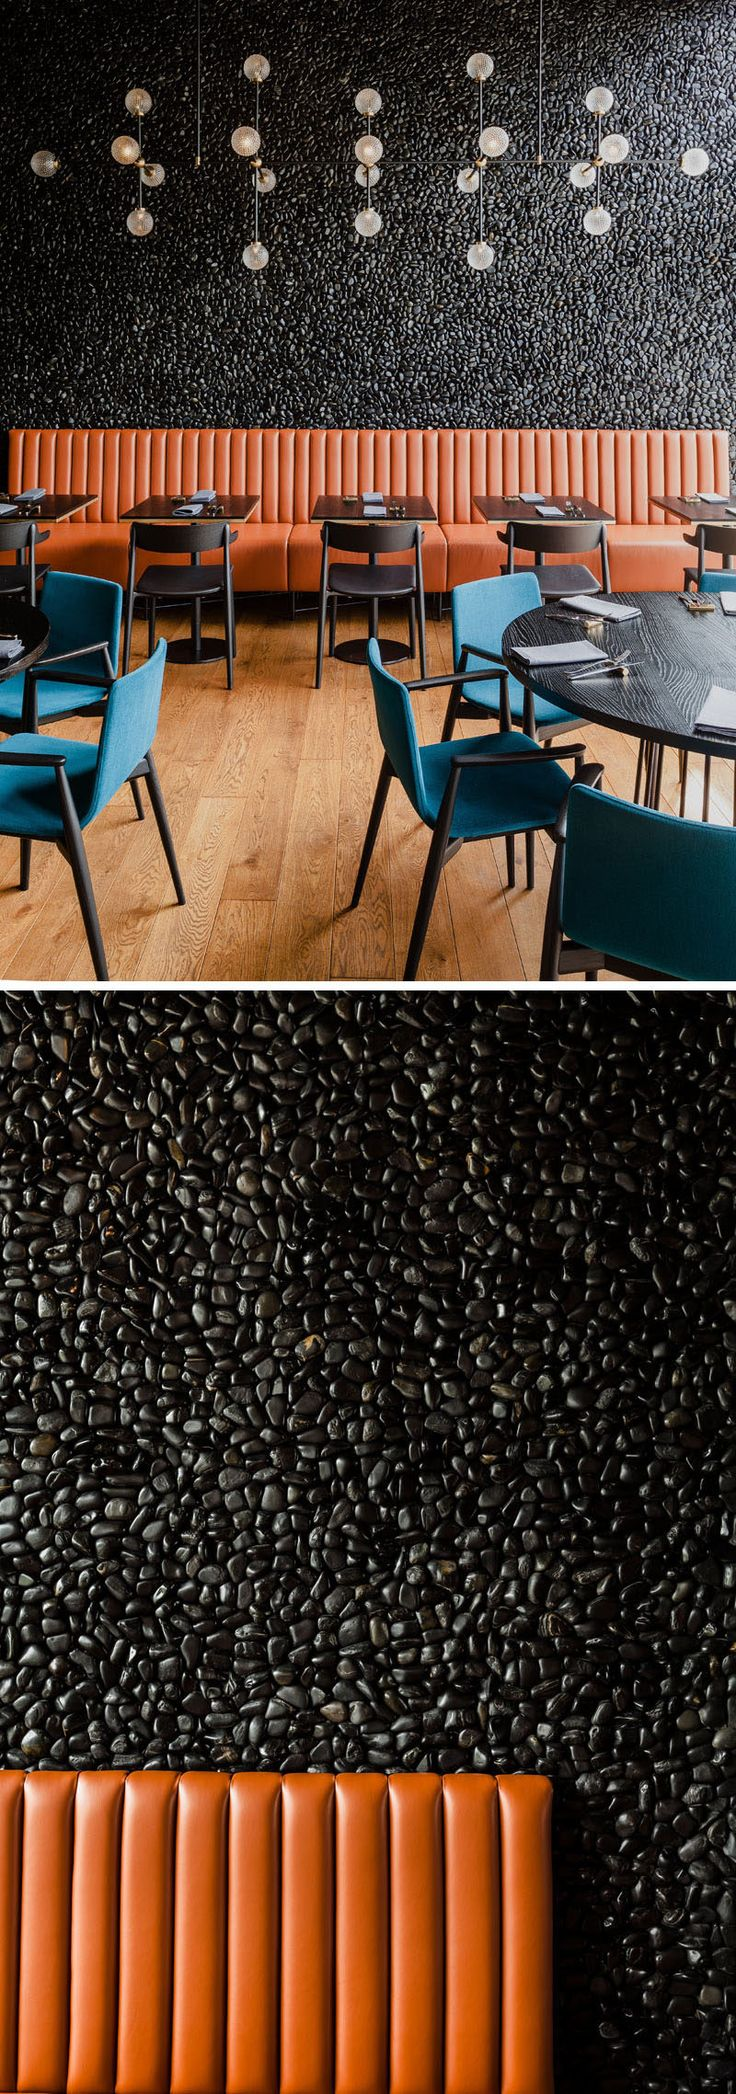 Leather banquette seating sits against a background of hand-laid wall mosaic of black pebbles in this modern restaurant. #Pebbles #AccentWall #RestaurantDesign